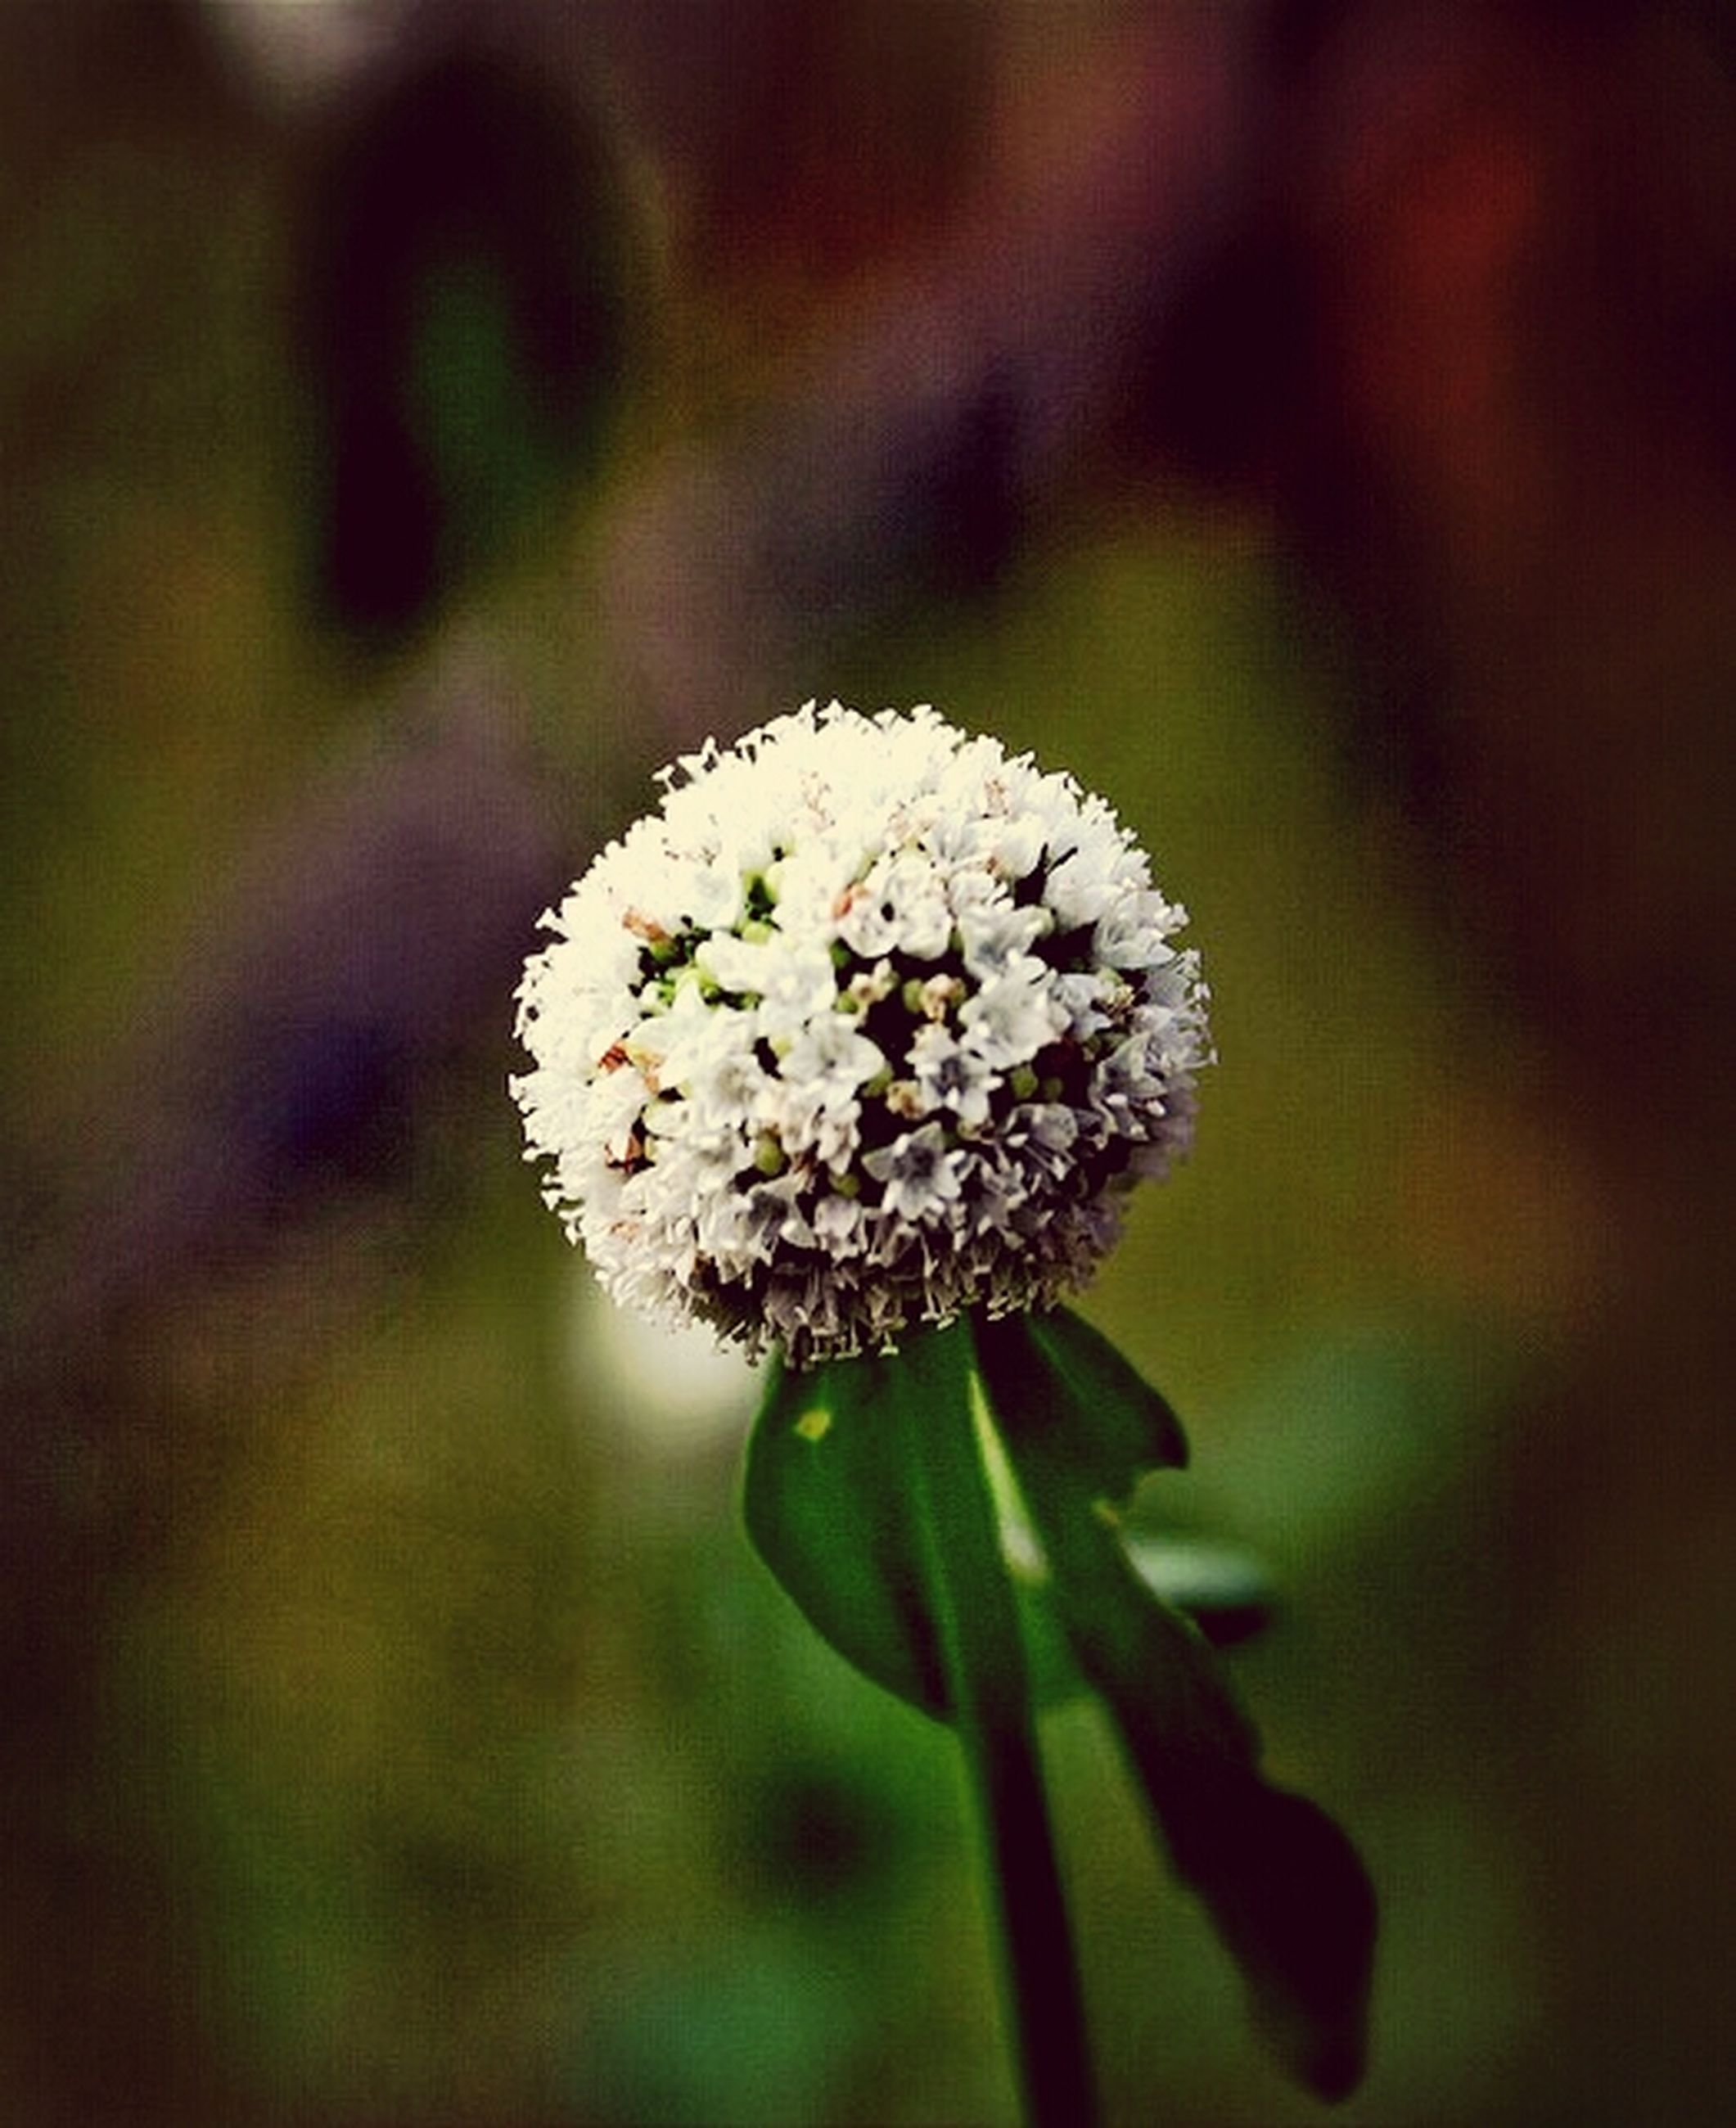 focus on foreground, close-up, growth, white color, fragility, nature, cold temperature, winter, flower, snow, beauty in nature, freshness, season, plant, selective focus, frozen, day, outdoors, stem, weather